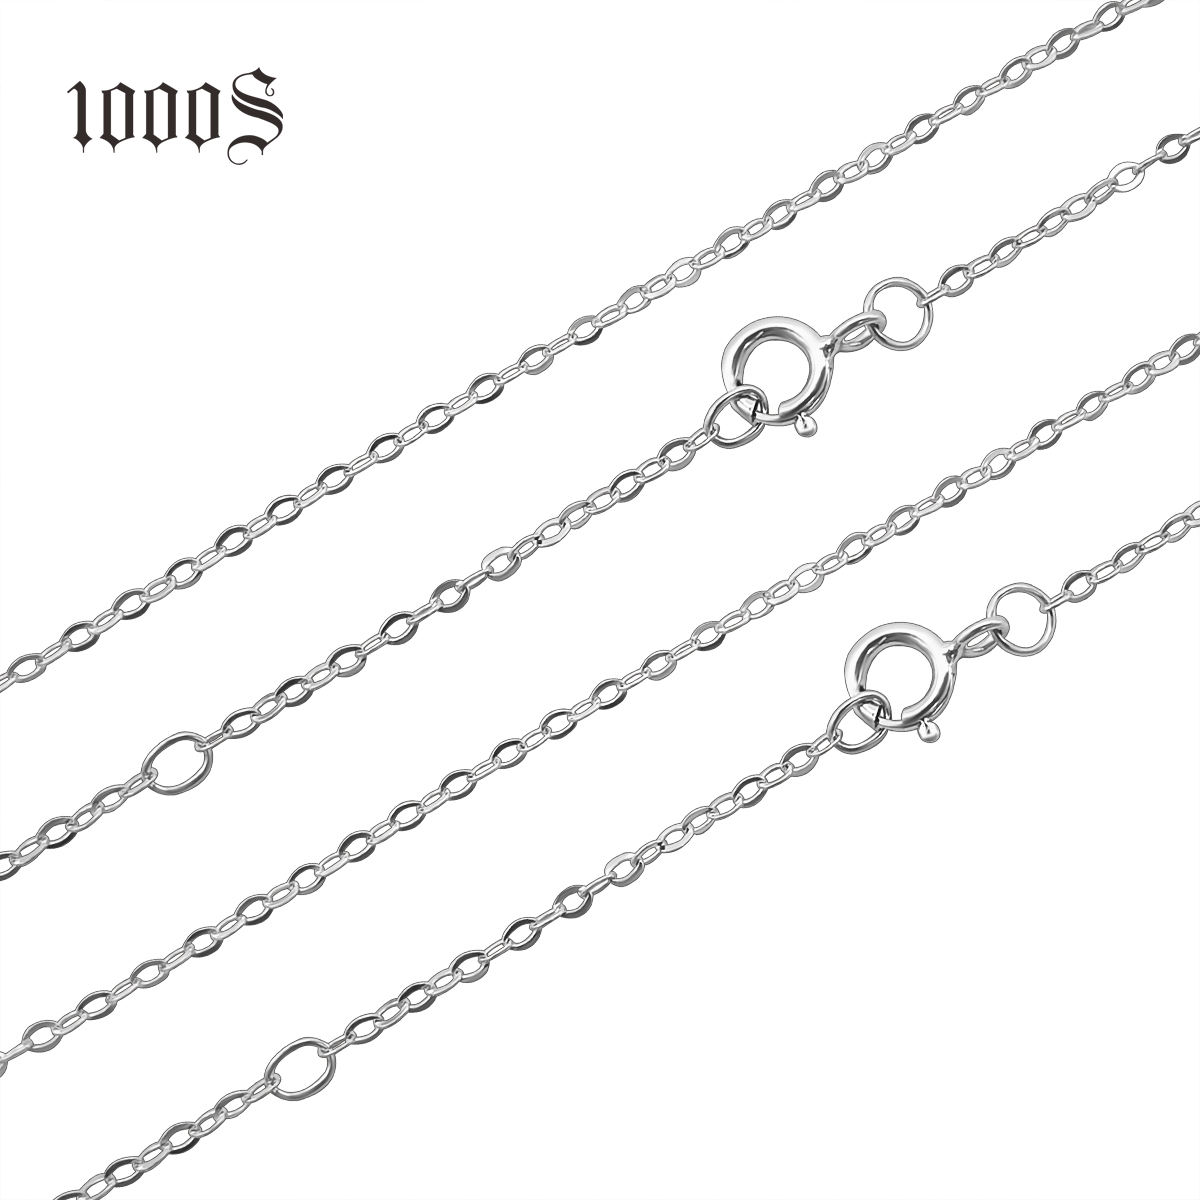 Italian 925 Sterling Silver Jewelry Solid Silver Necklace Chain For Women with 18inches base link chain